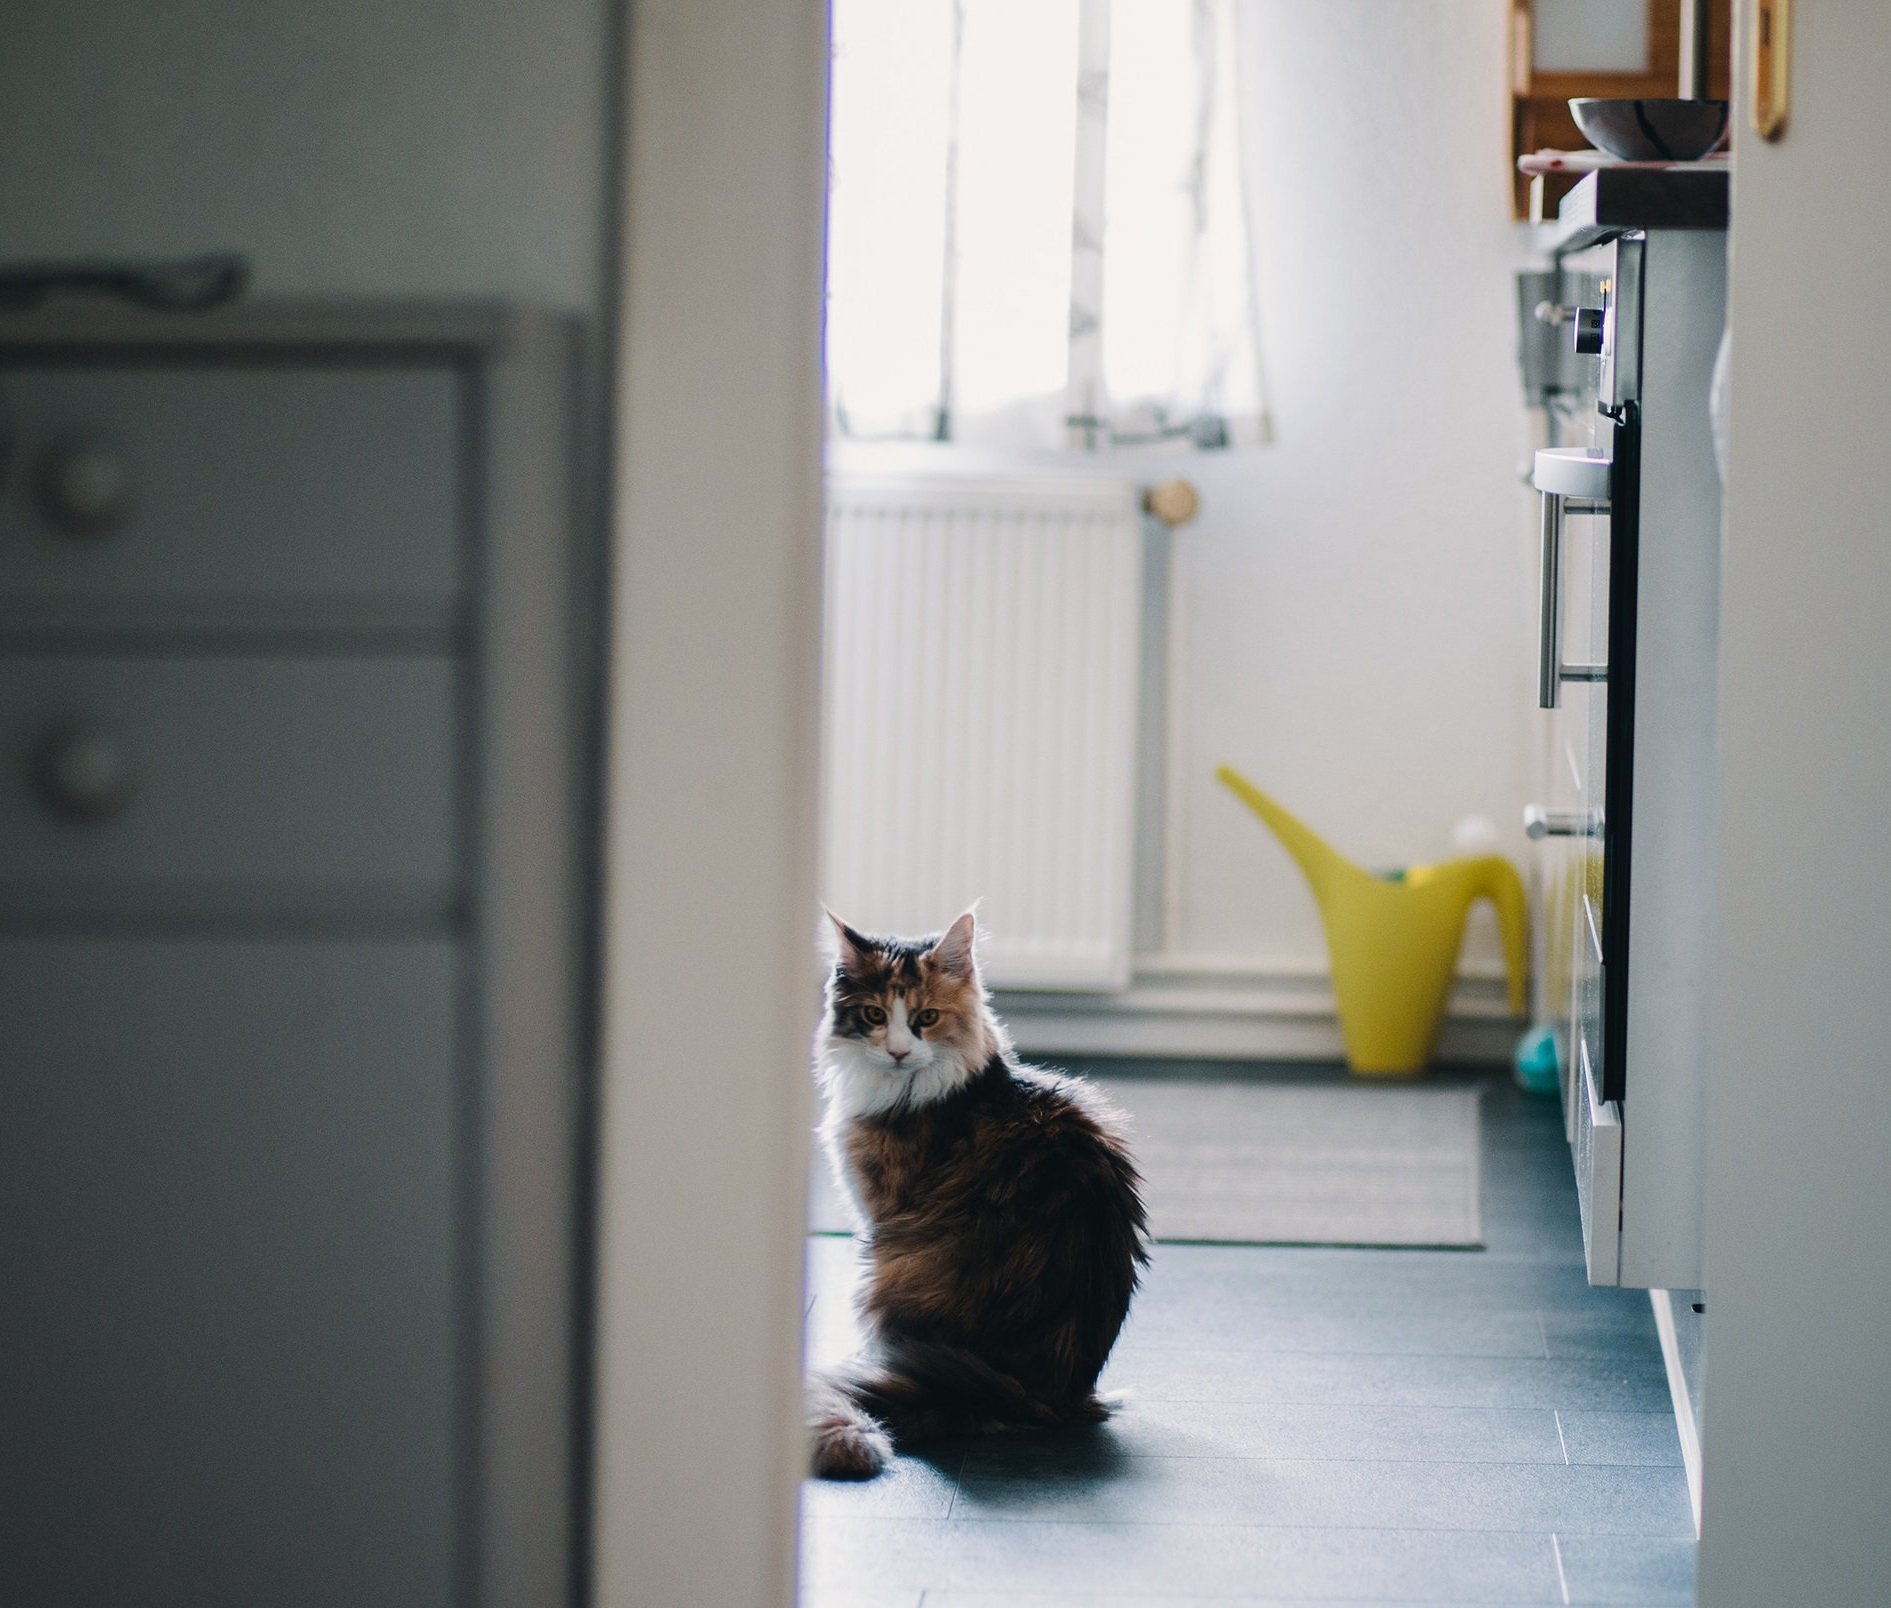 Pet Sitting - Whether you're busy at work or thinking about going away for that well deserved break, this service is paw-fect for cats, dogs and smaller animals as I pop in once or twice a day to clean up, refill water and food bowls and administer any medication needed.Learn more ➝